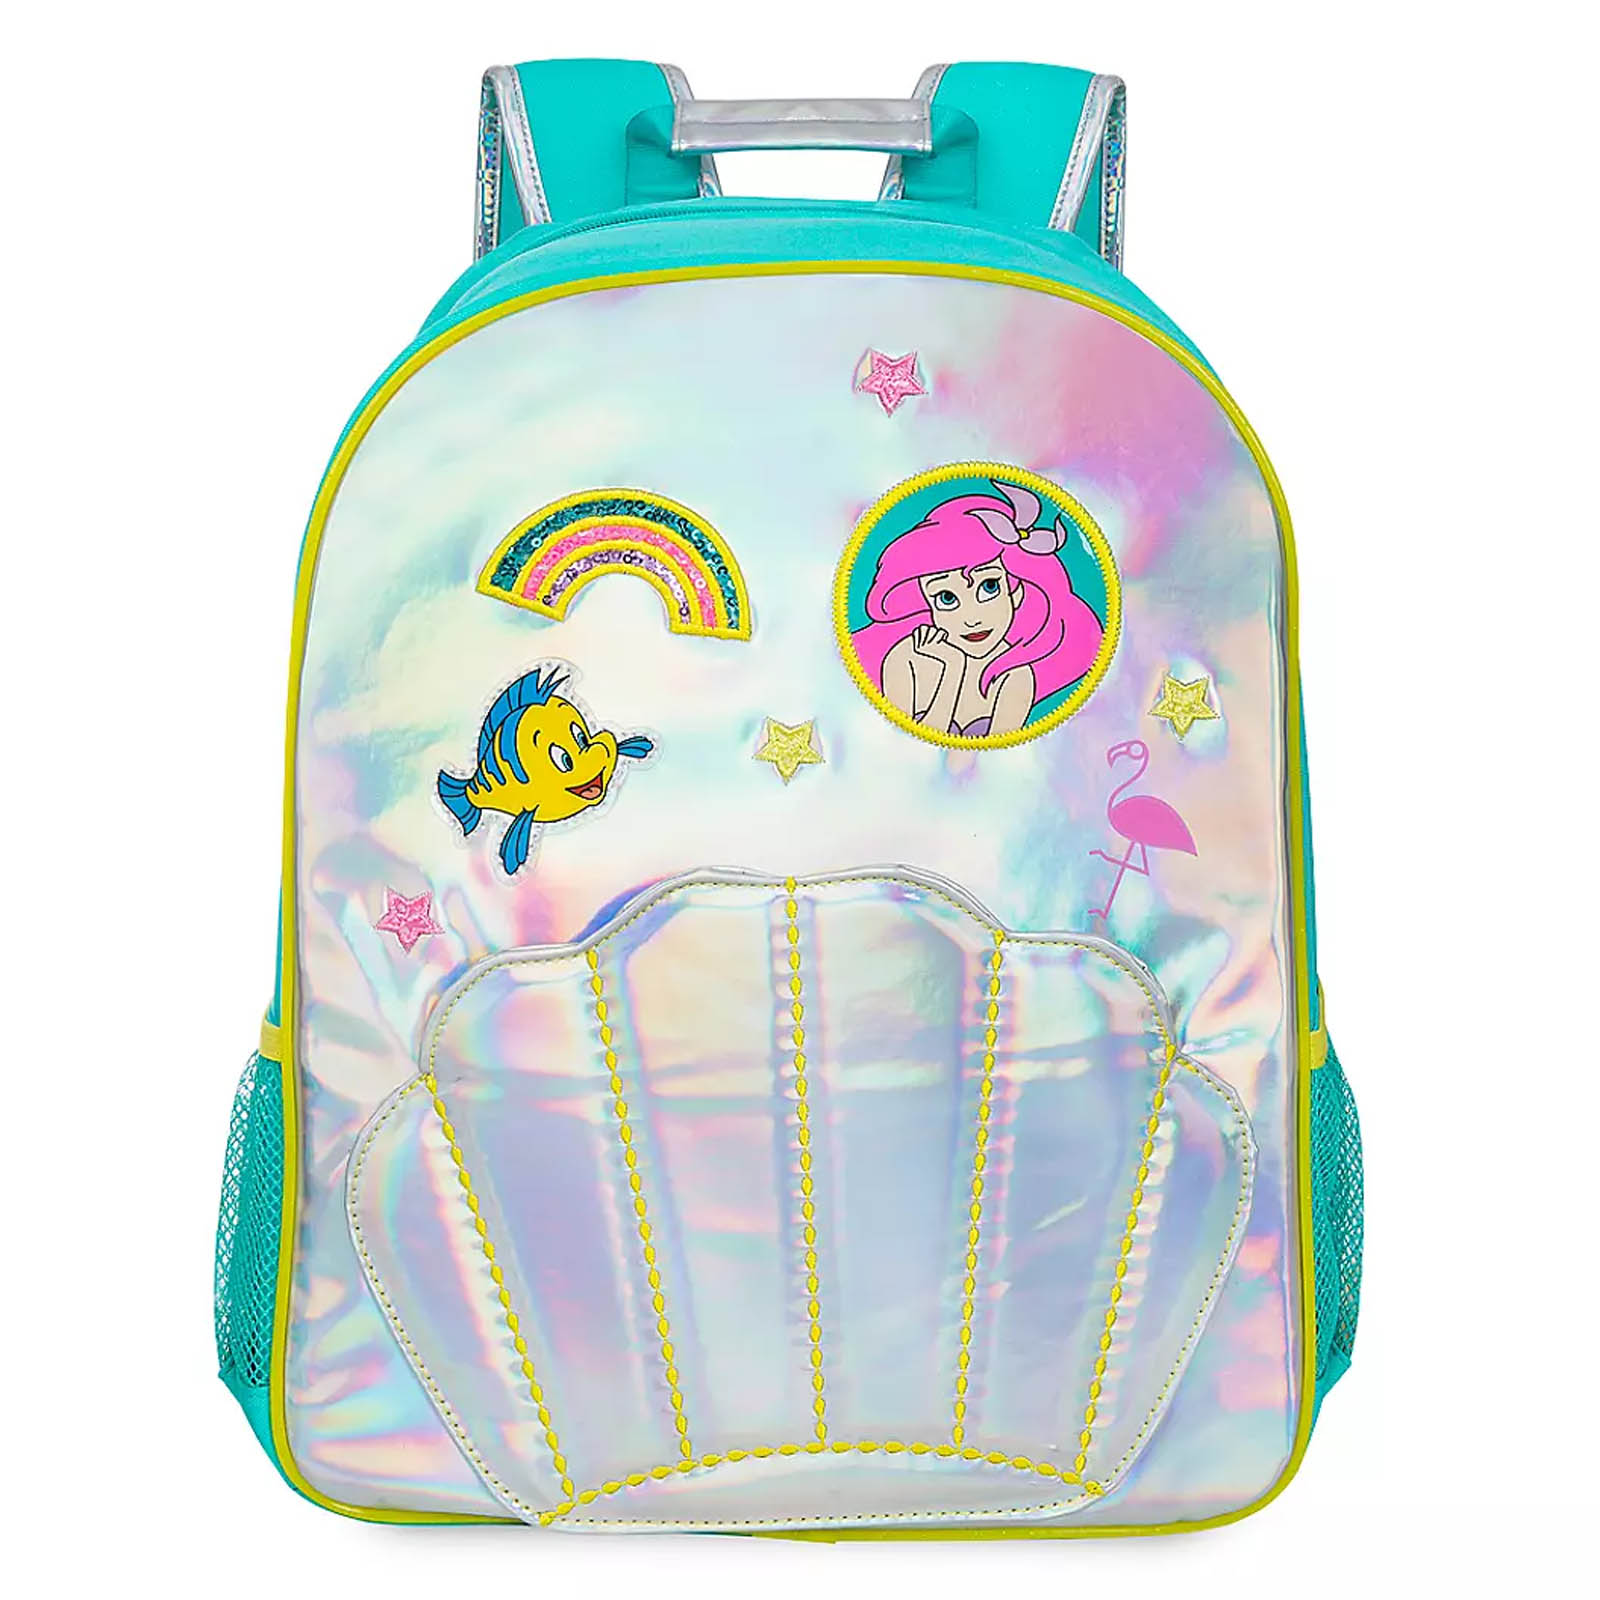 Disney Princess Ariel Little Mermaid Backpack 40cm Genuine Disne